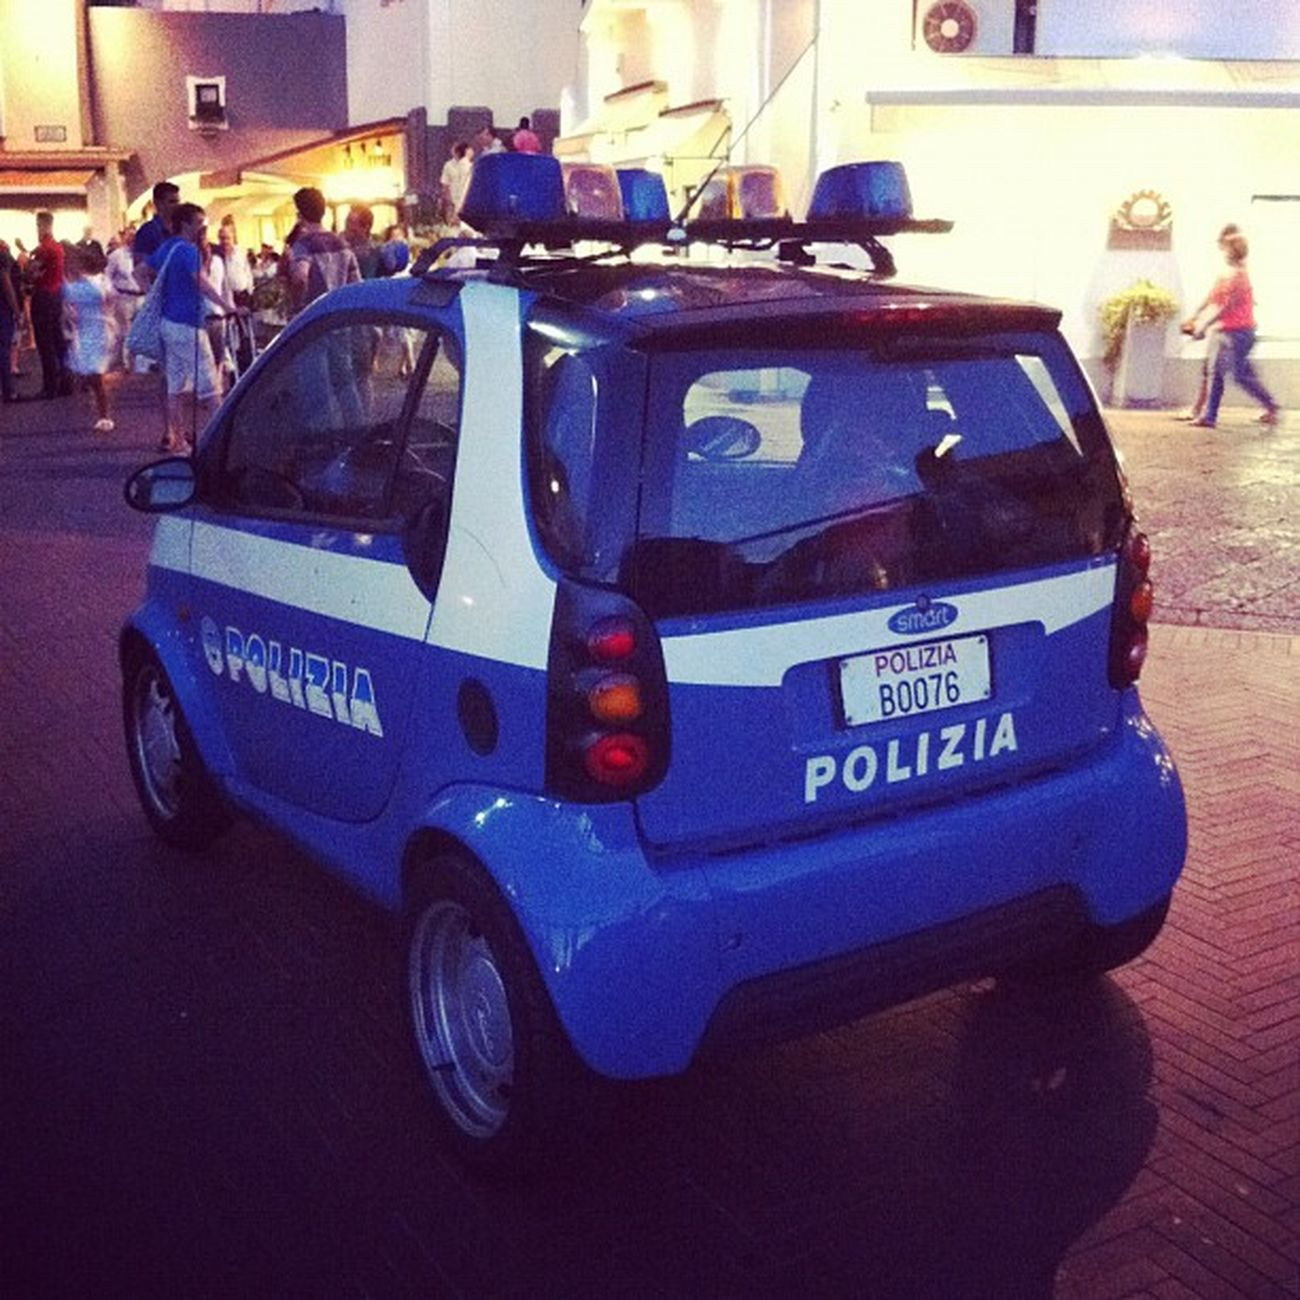 #capri #police #polizei #polizia #smart Patrol  Polizia Car Criminal Dogs Locations Scene Quickly Mini Operations Reach Certain High Assist Police Visibility Polizei Suspects Napoli Officers Capri Adapted Smart Crime Bomb Incident